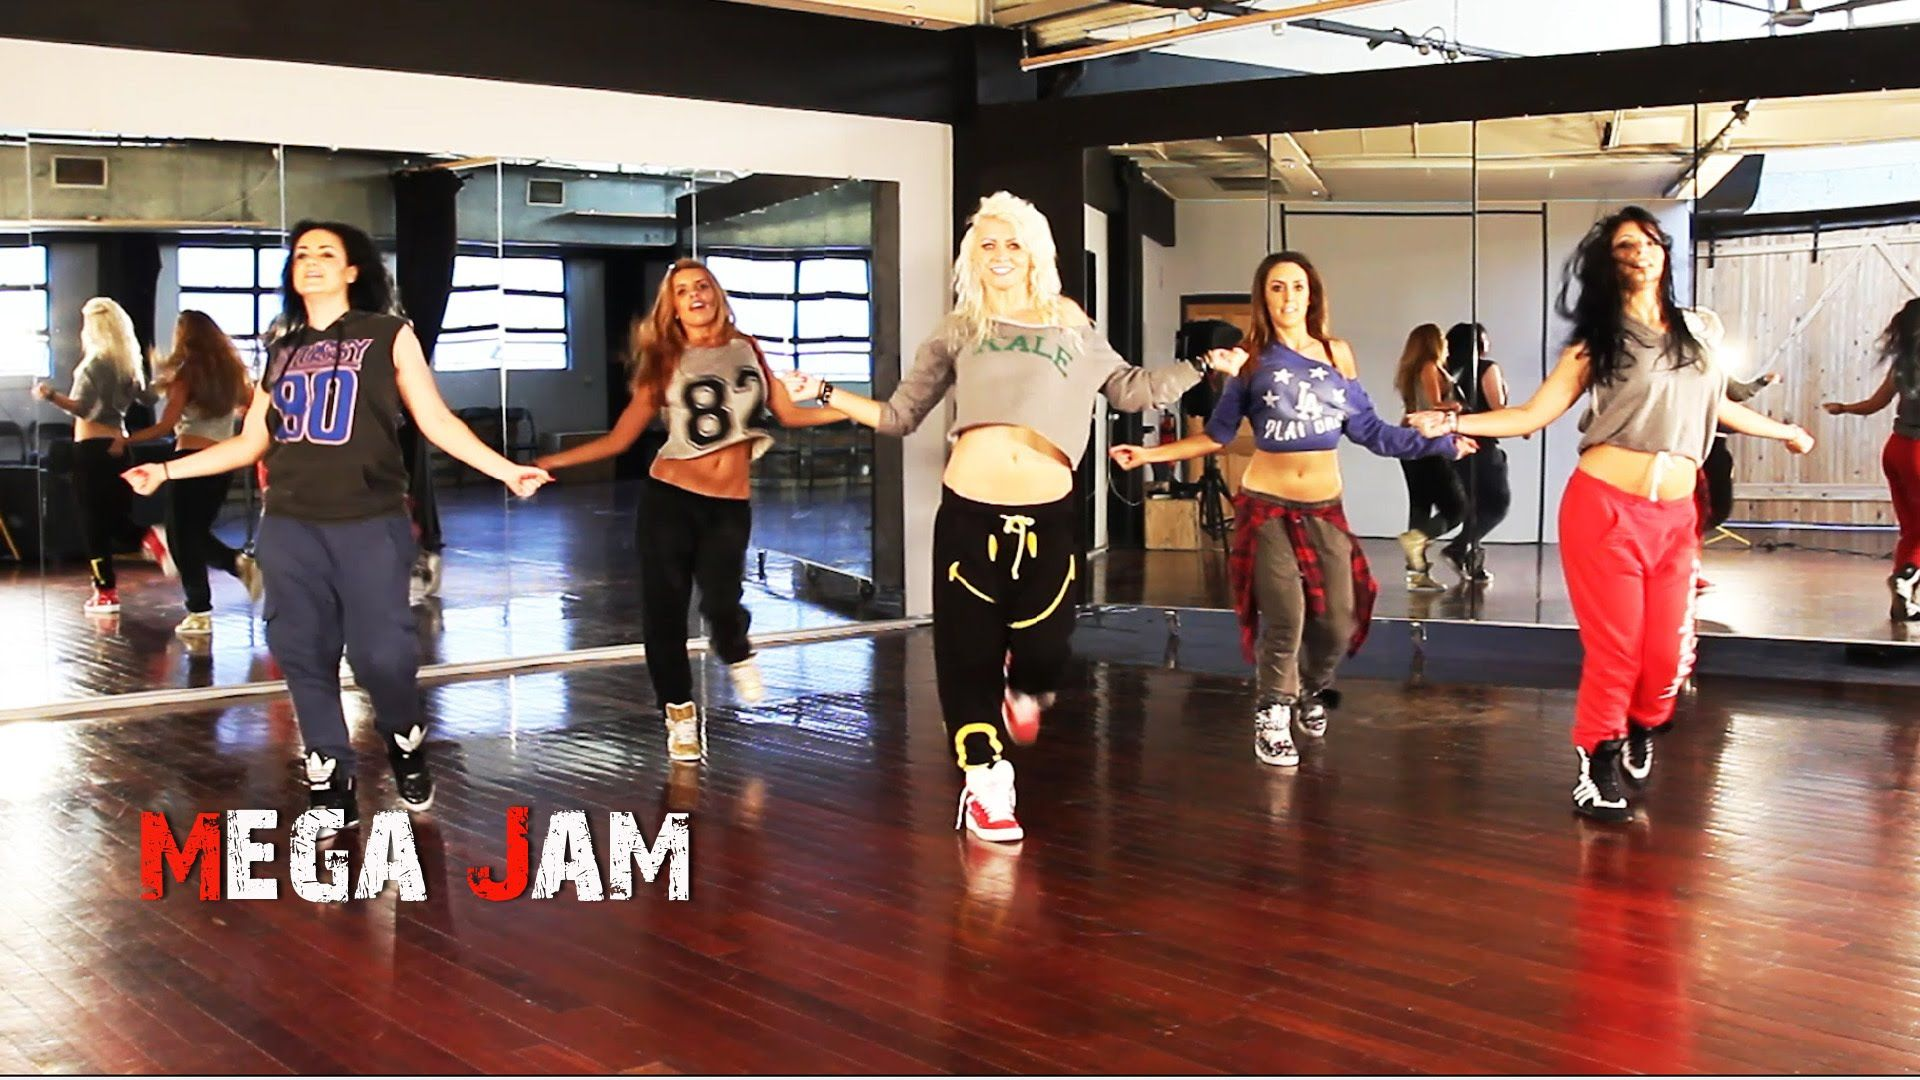 Step It Up My Jamba Routine Choreography By Jasmine Meakin Mega Jam Learn How To Join The Myjambarou Mega Jam Choreography Dance Like No One Is Watching